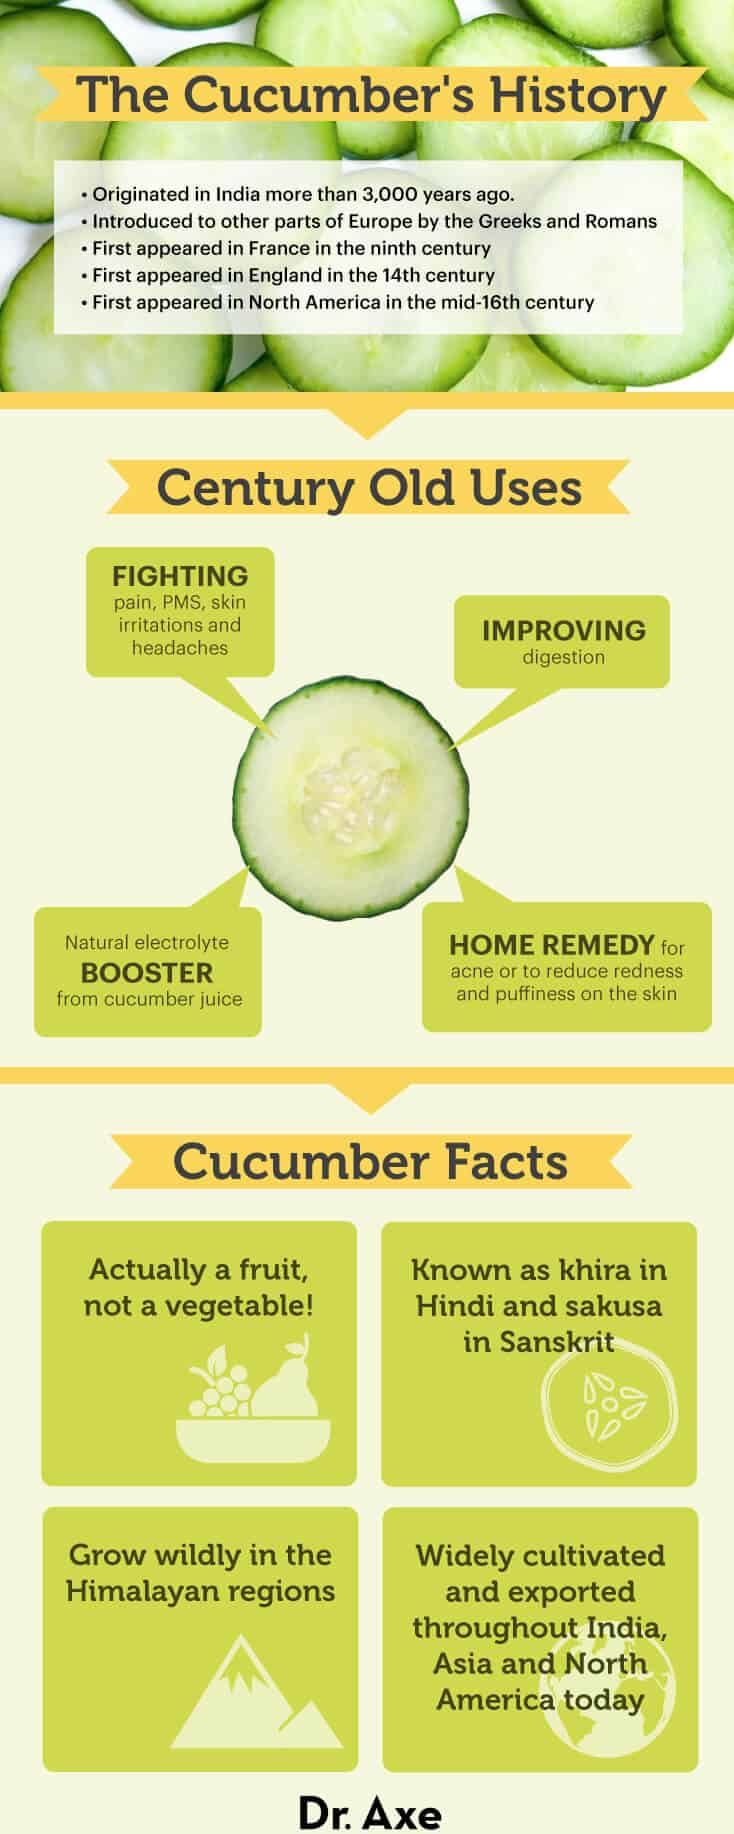 Cucumber Nutrition, Health Benefits, Recipes and More